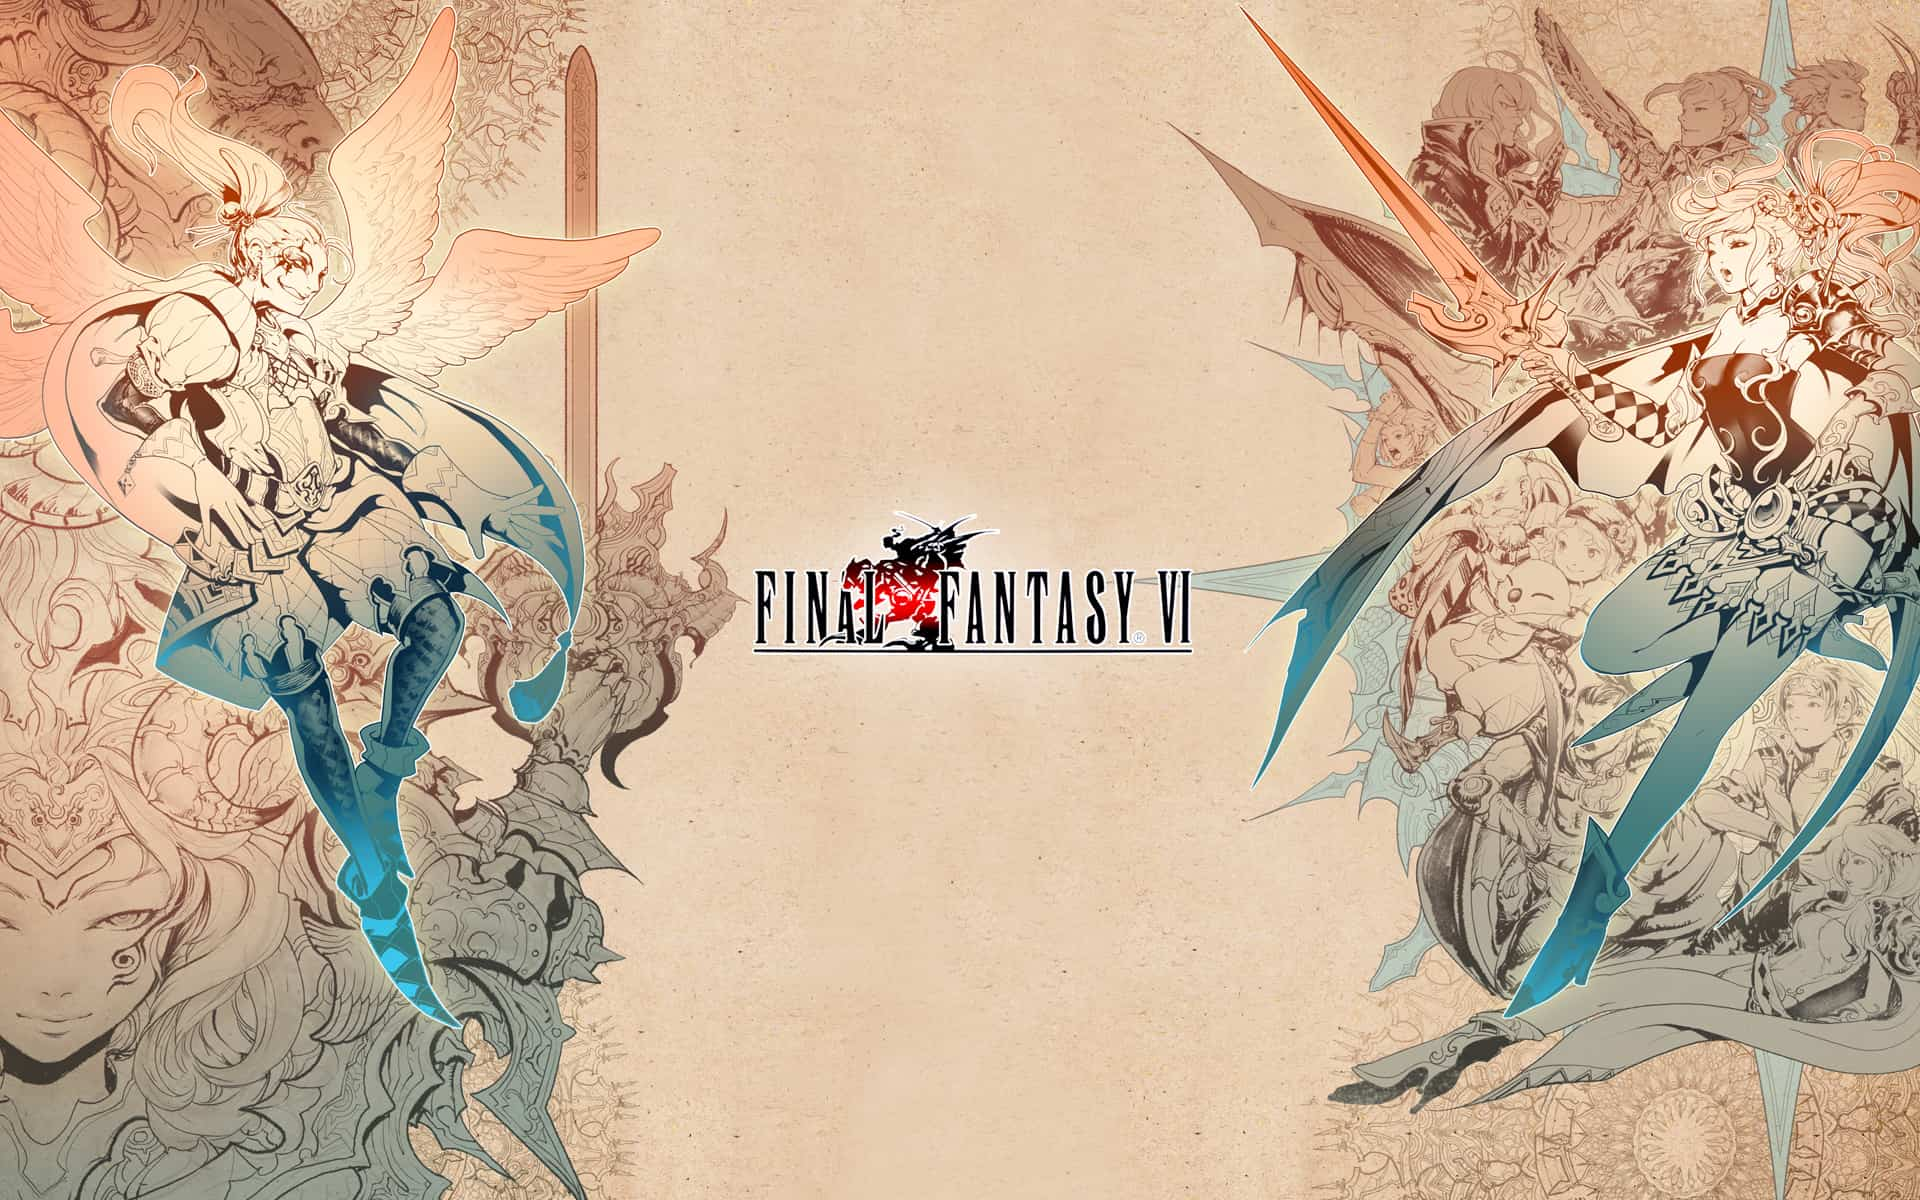 Final.Fantasy.VI.full.131600